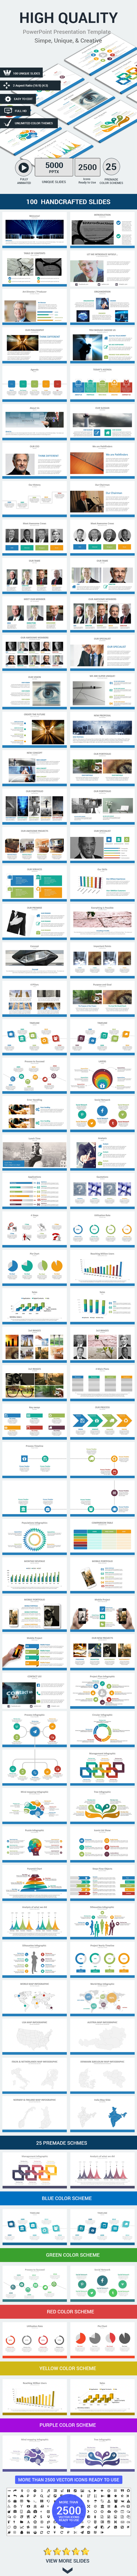 HIGH QUALITY PowerPoint Presentation Template - PowerPoint Templates Presentation Templates